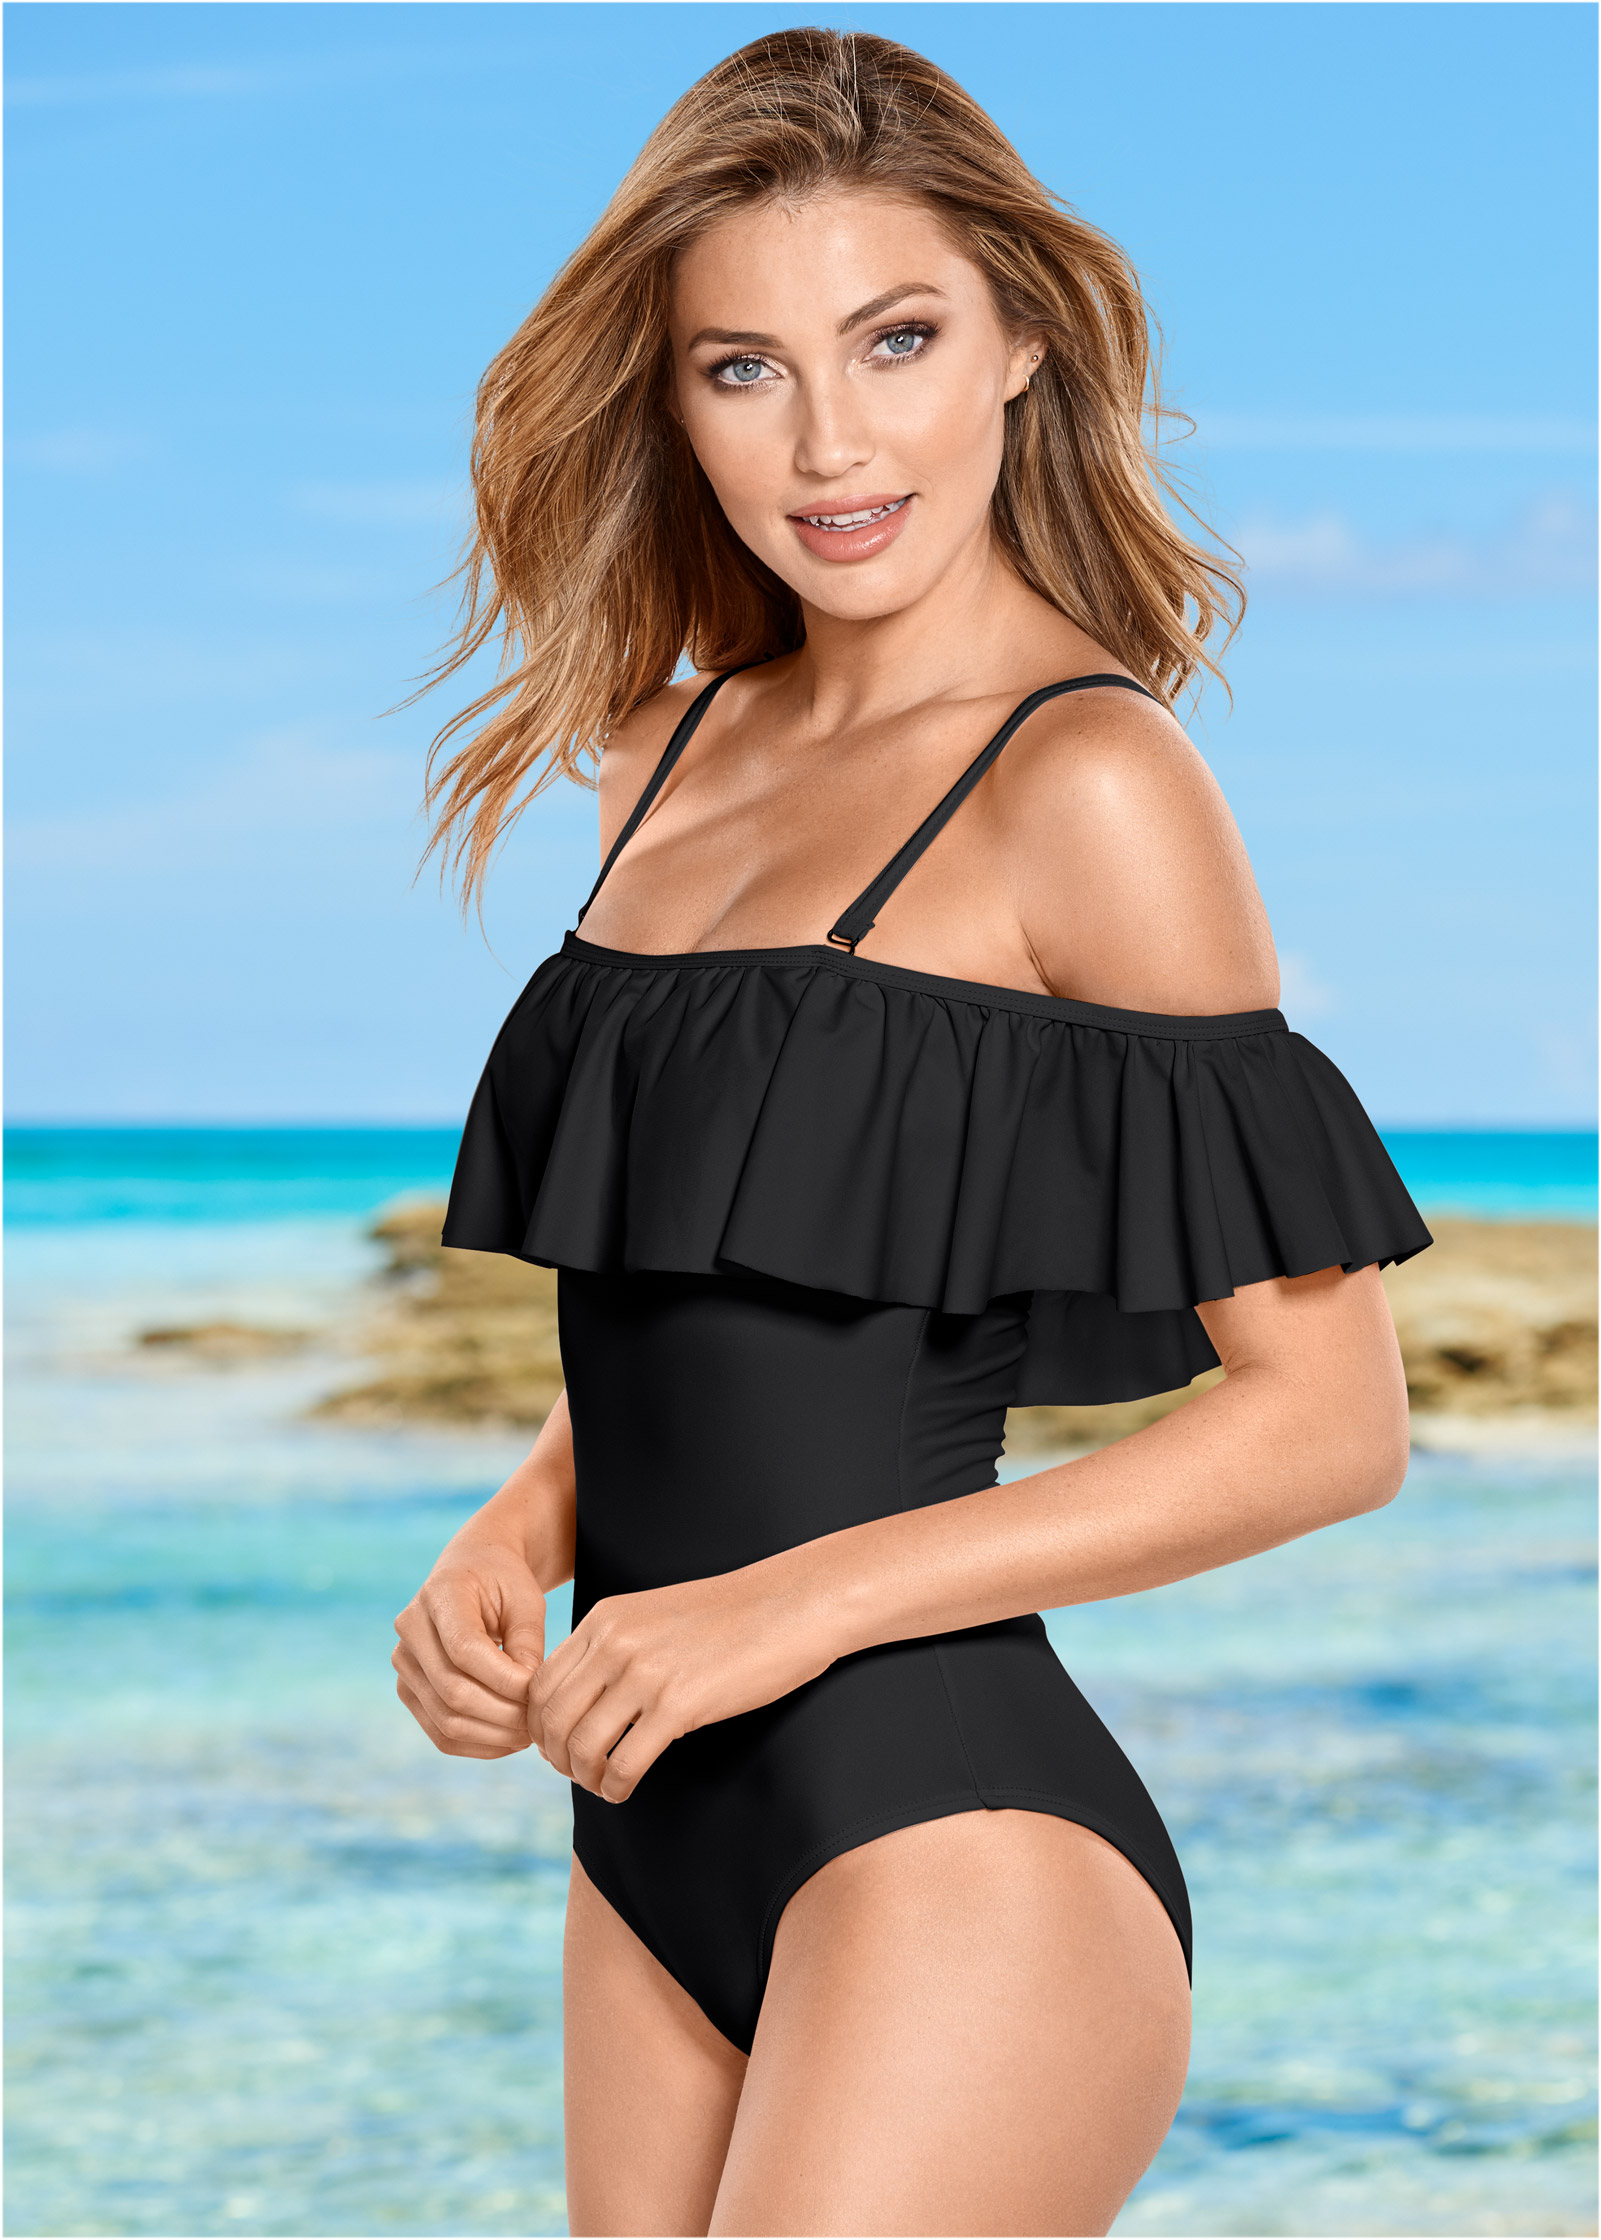 RUFFLE ONE-PIECE Swimsuit in Black Beauty | VENUS